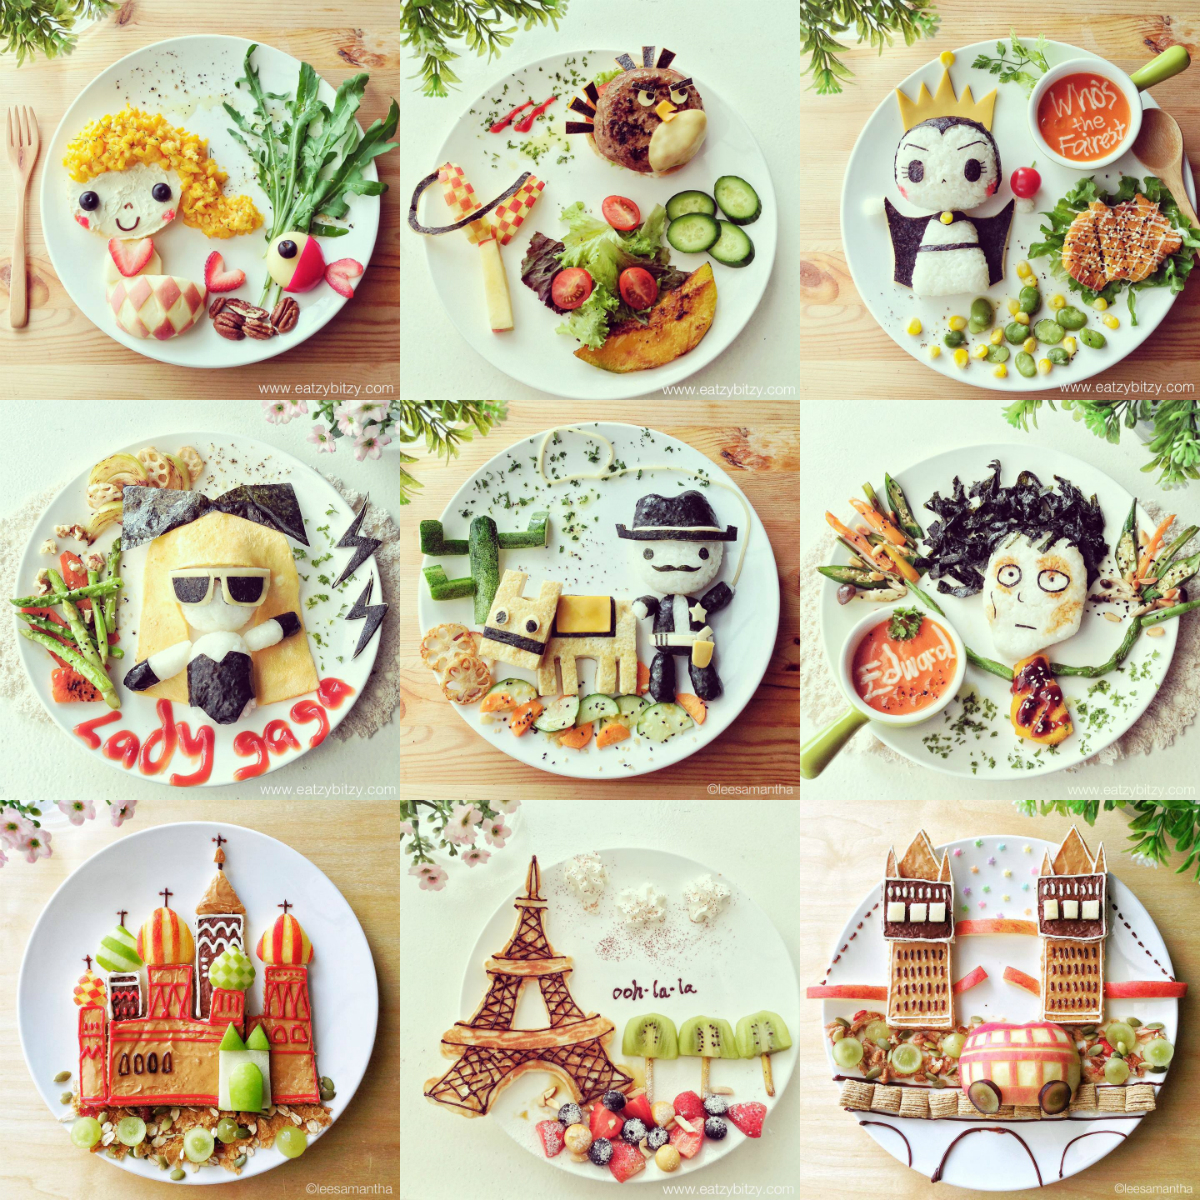 Art Design Ideas : Interesting creative food art design ideas